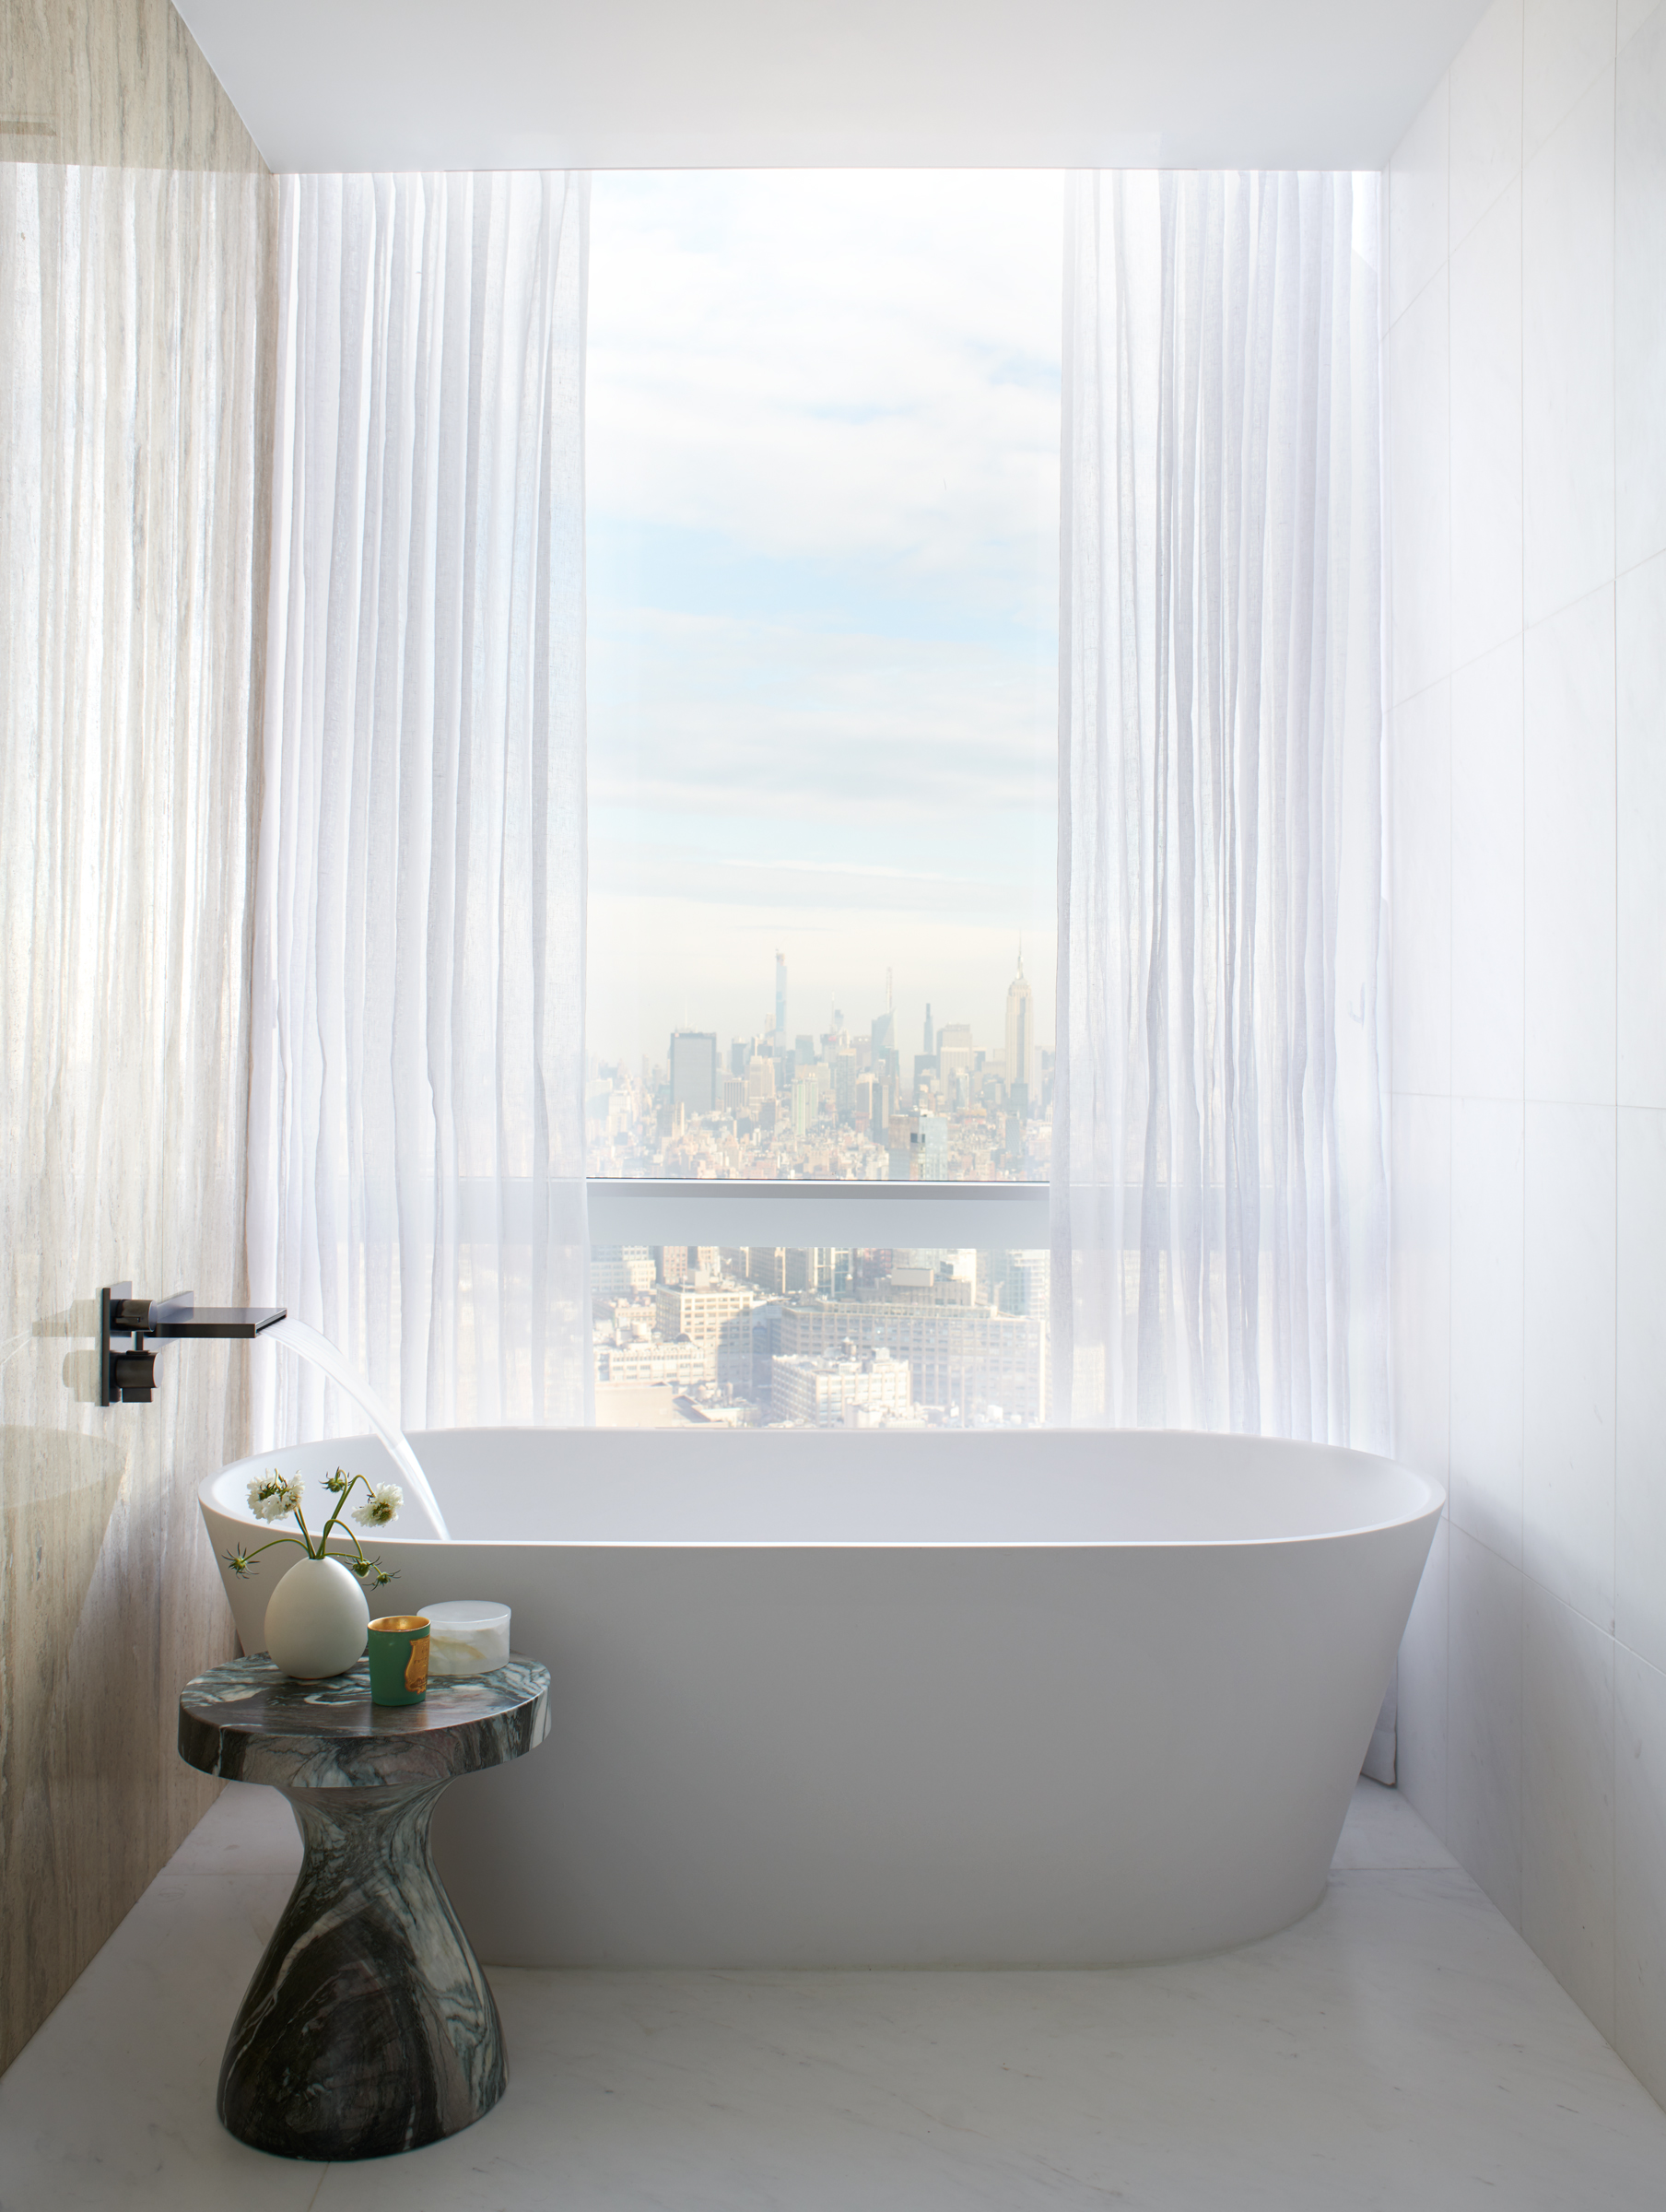 The city skyline is the perfect backdrop, even behind the bathtub